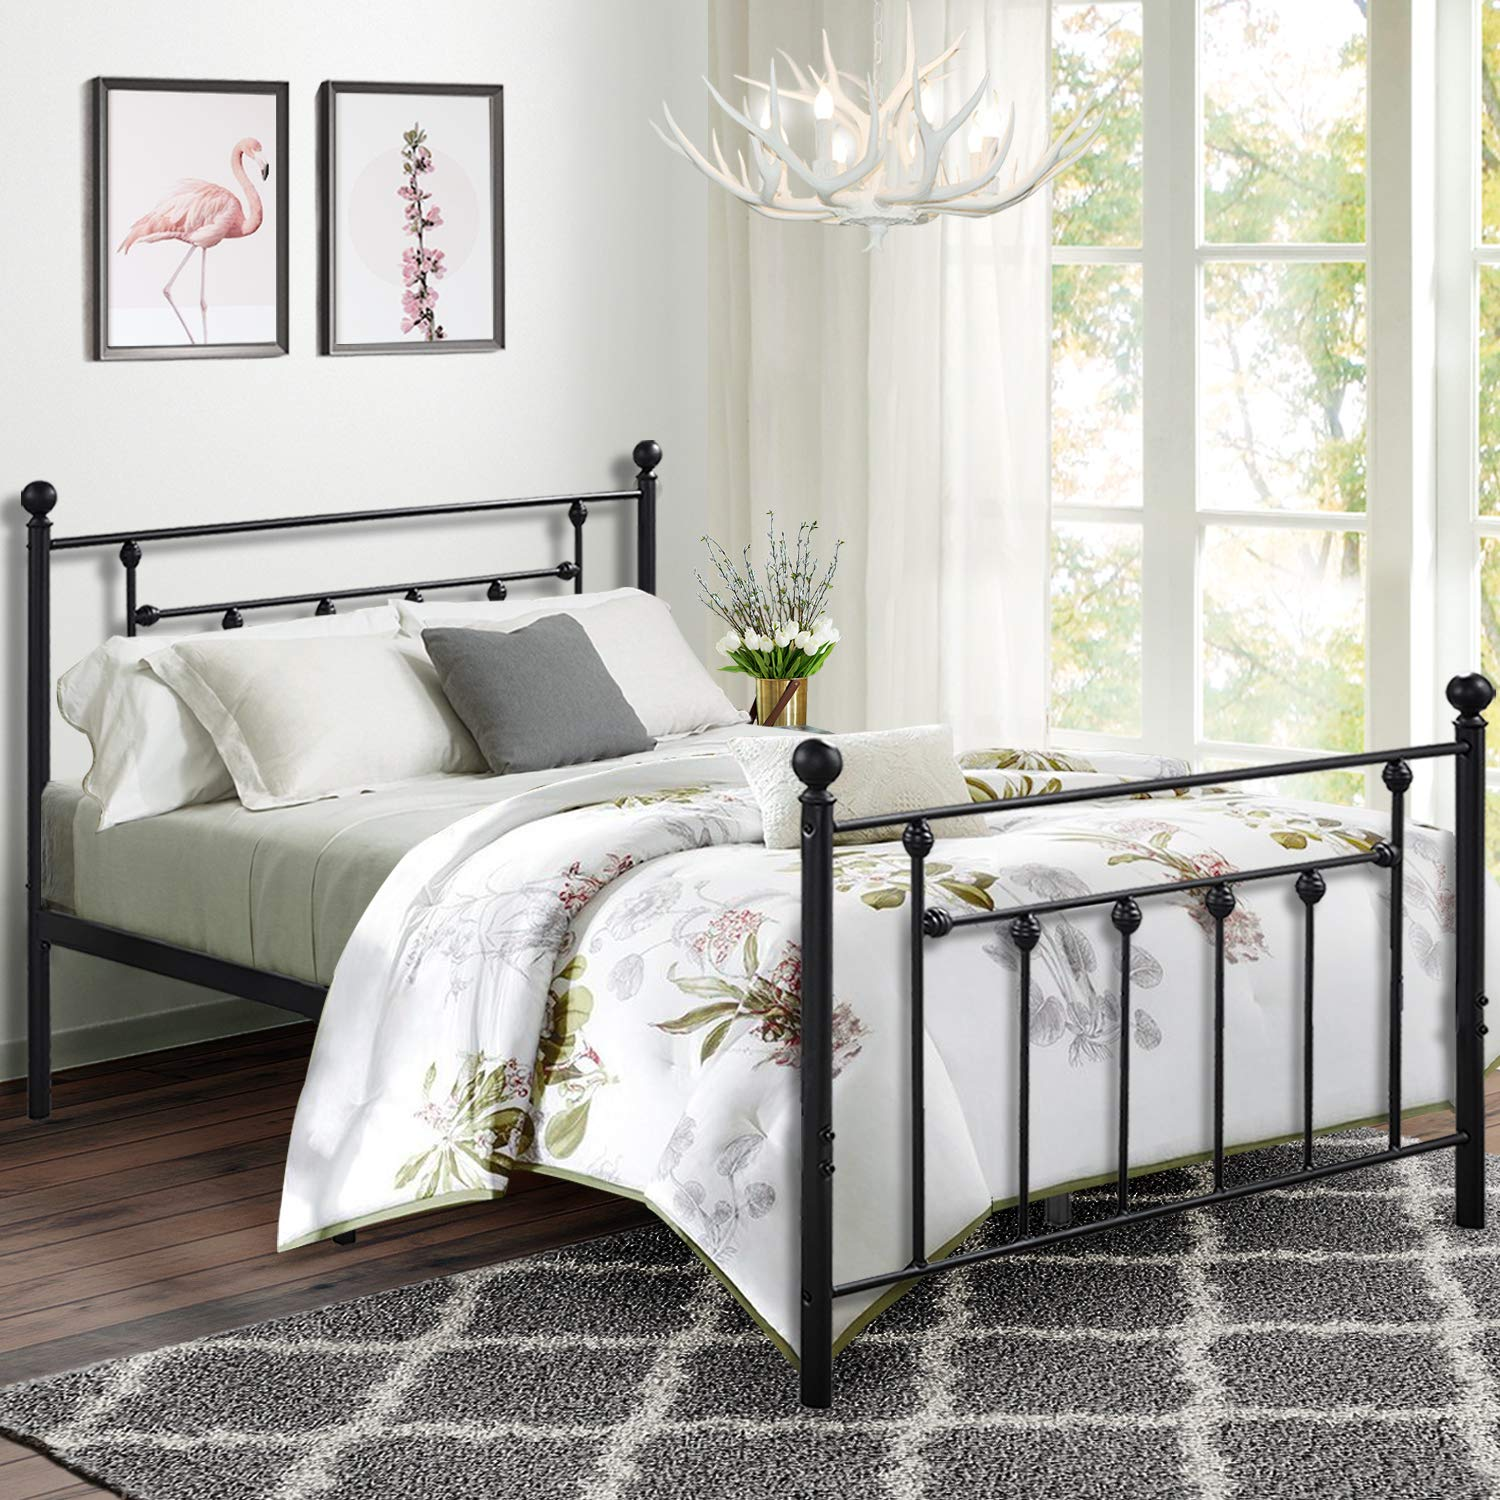 VECELO Queen Size Bed Frame, Metal Platform Mattress Foundation Box Spring Replacement with Headboard Victorian Style